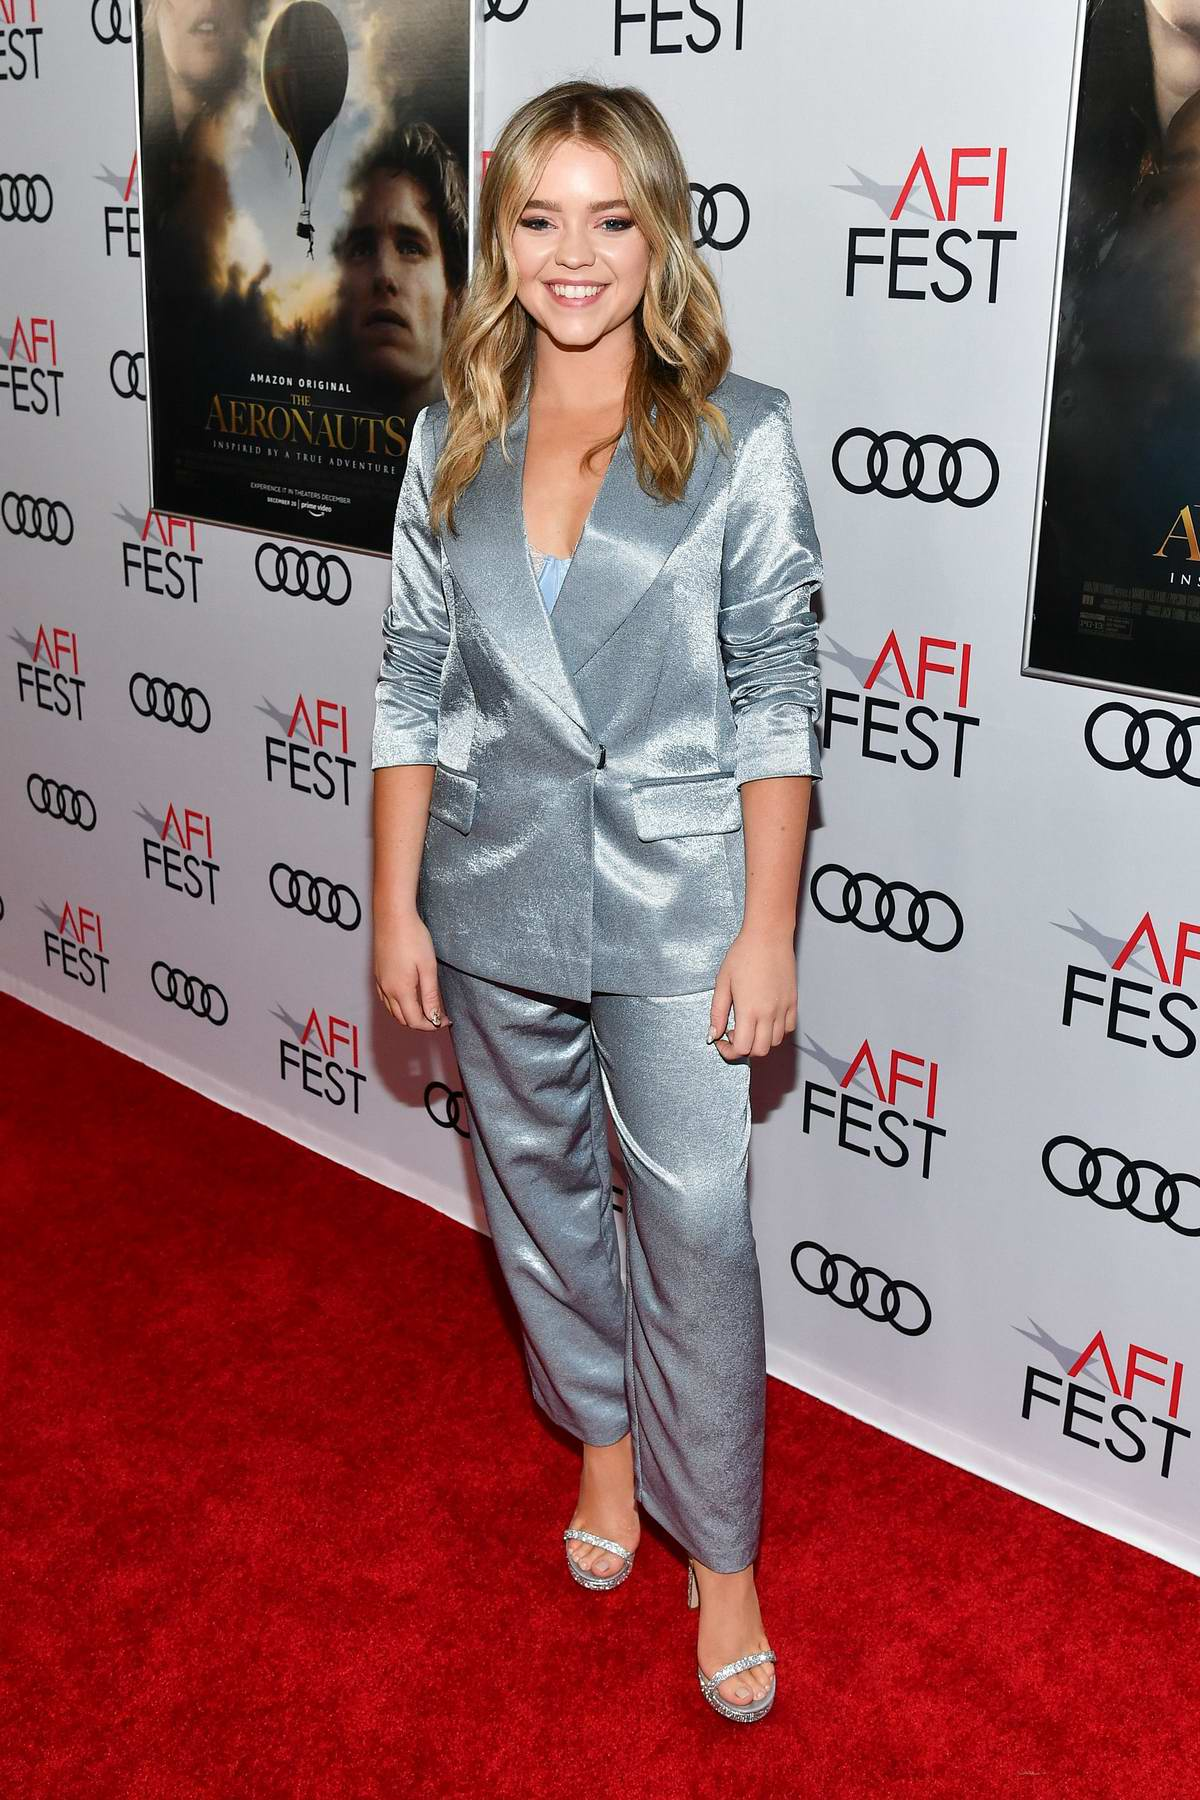 Jade Pettyjohn attends 'The Aeronauts' film gala screening during AFI Fest in Los Angeles